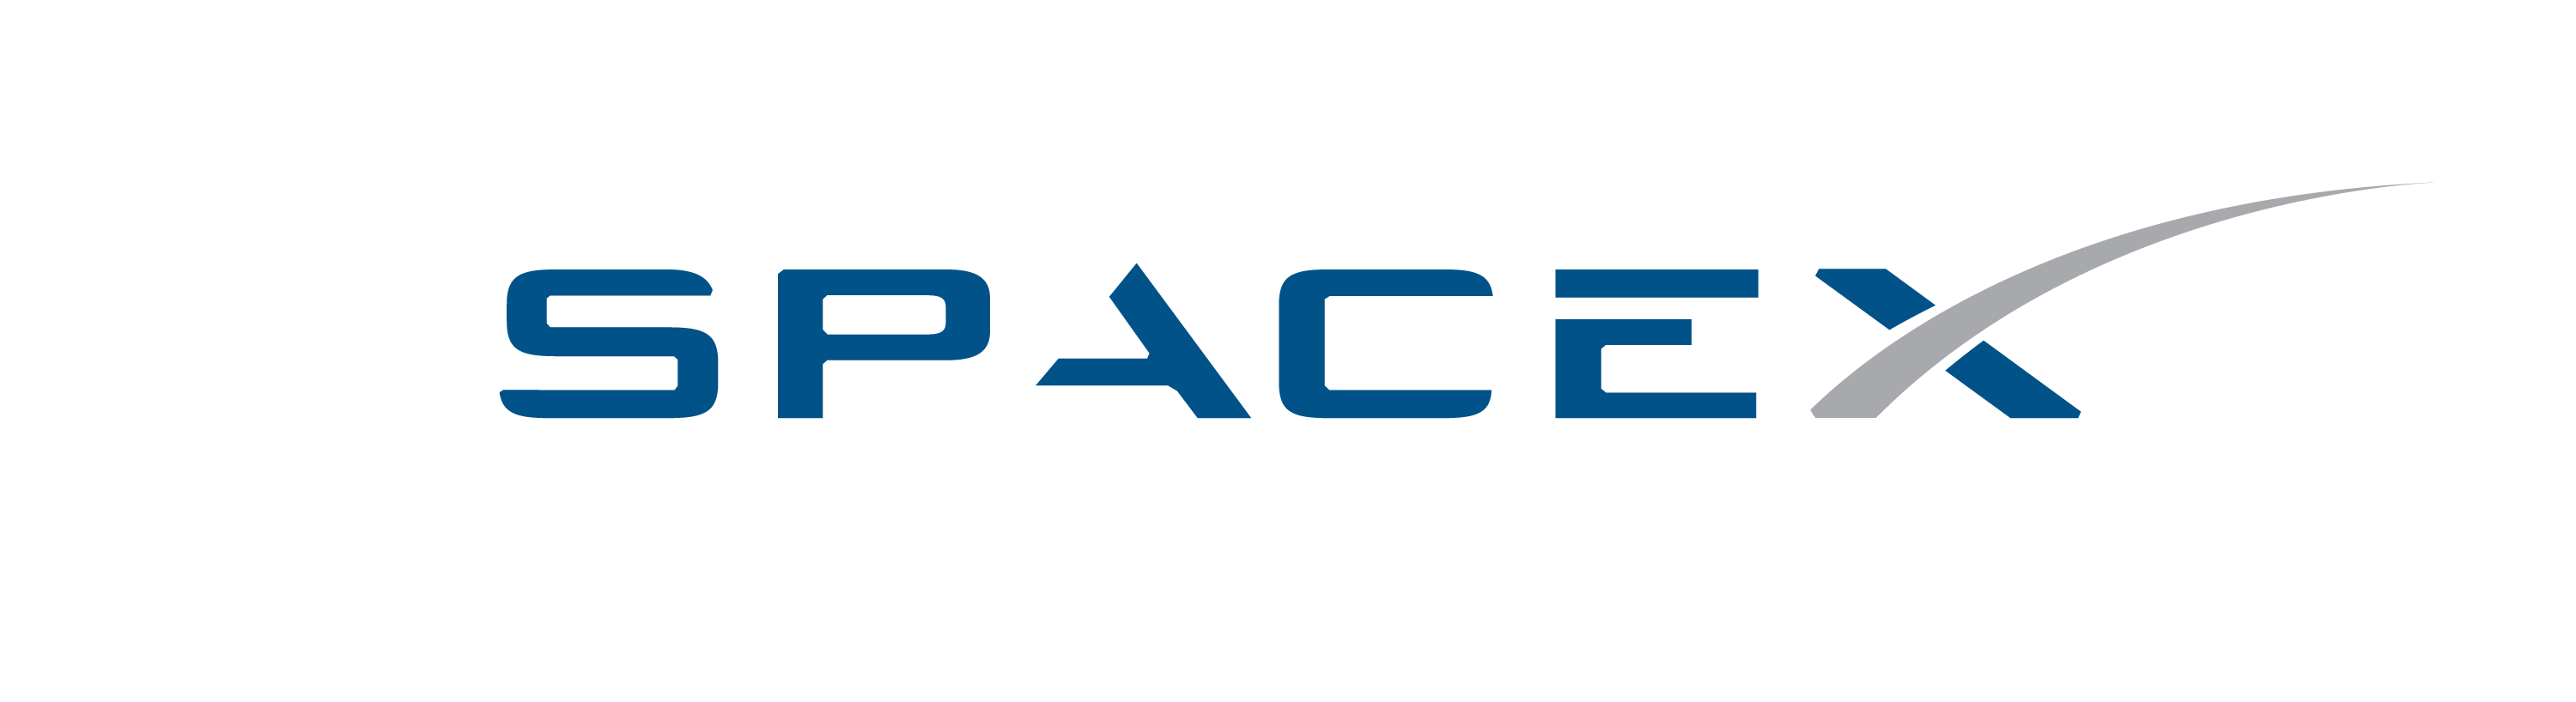 SpaceX Logo Wallpaper